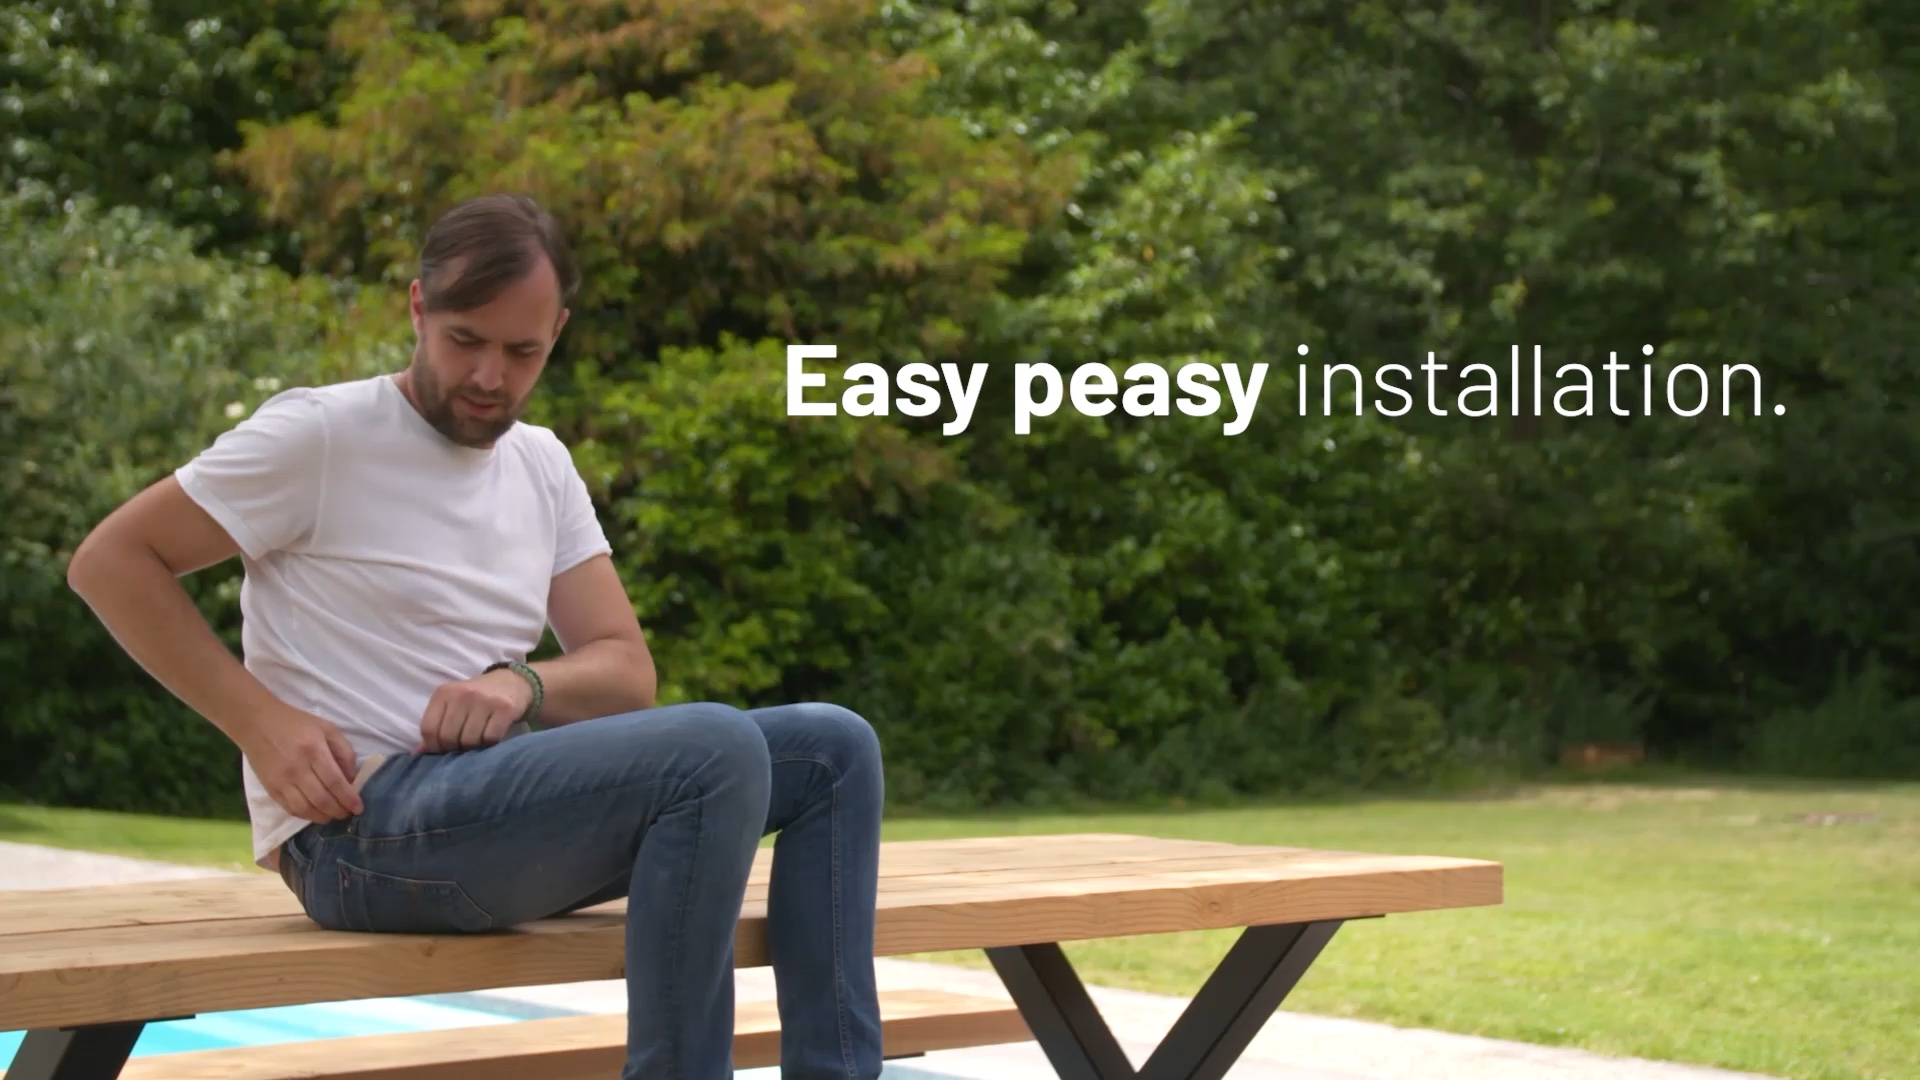 Easy peasy installation.